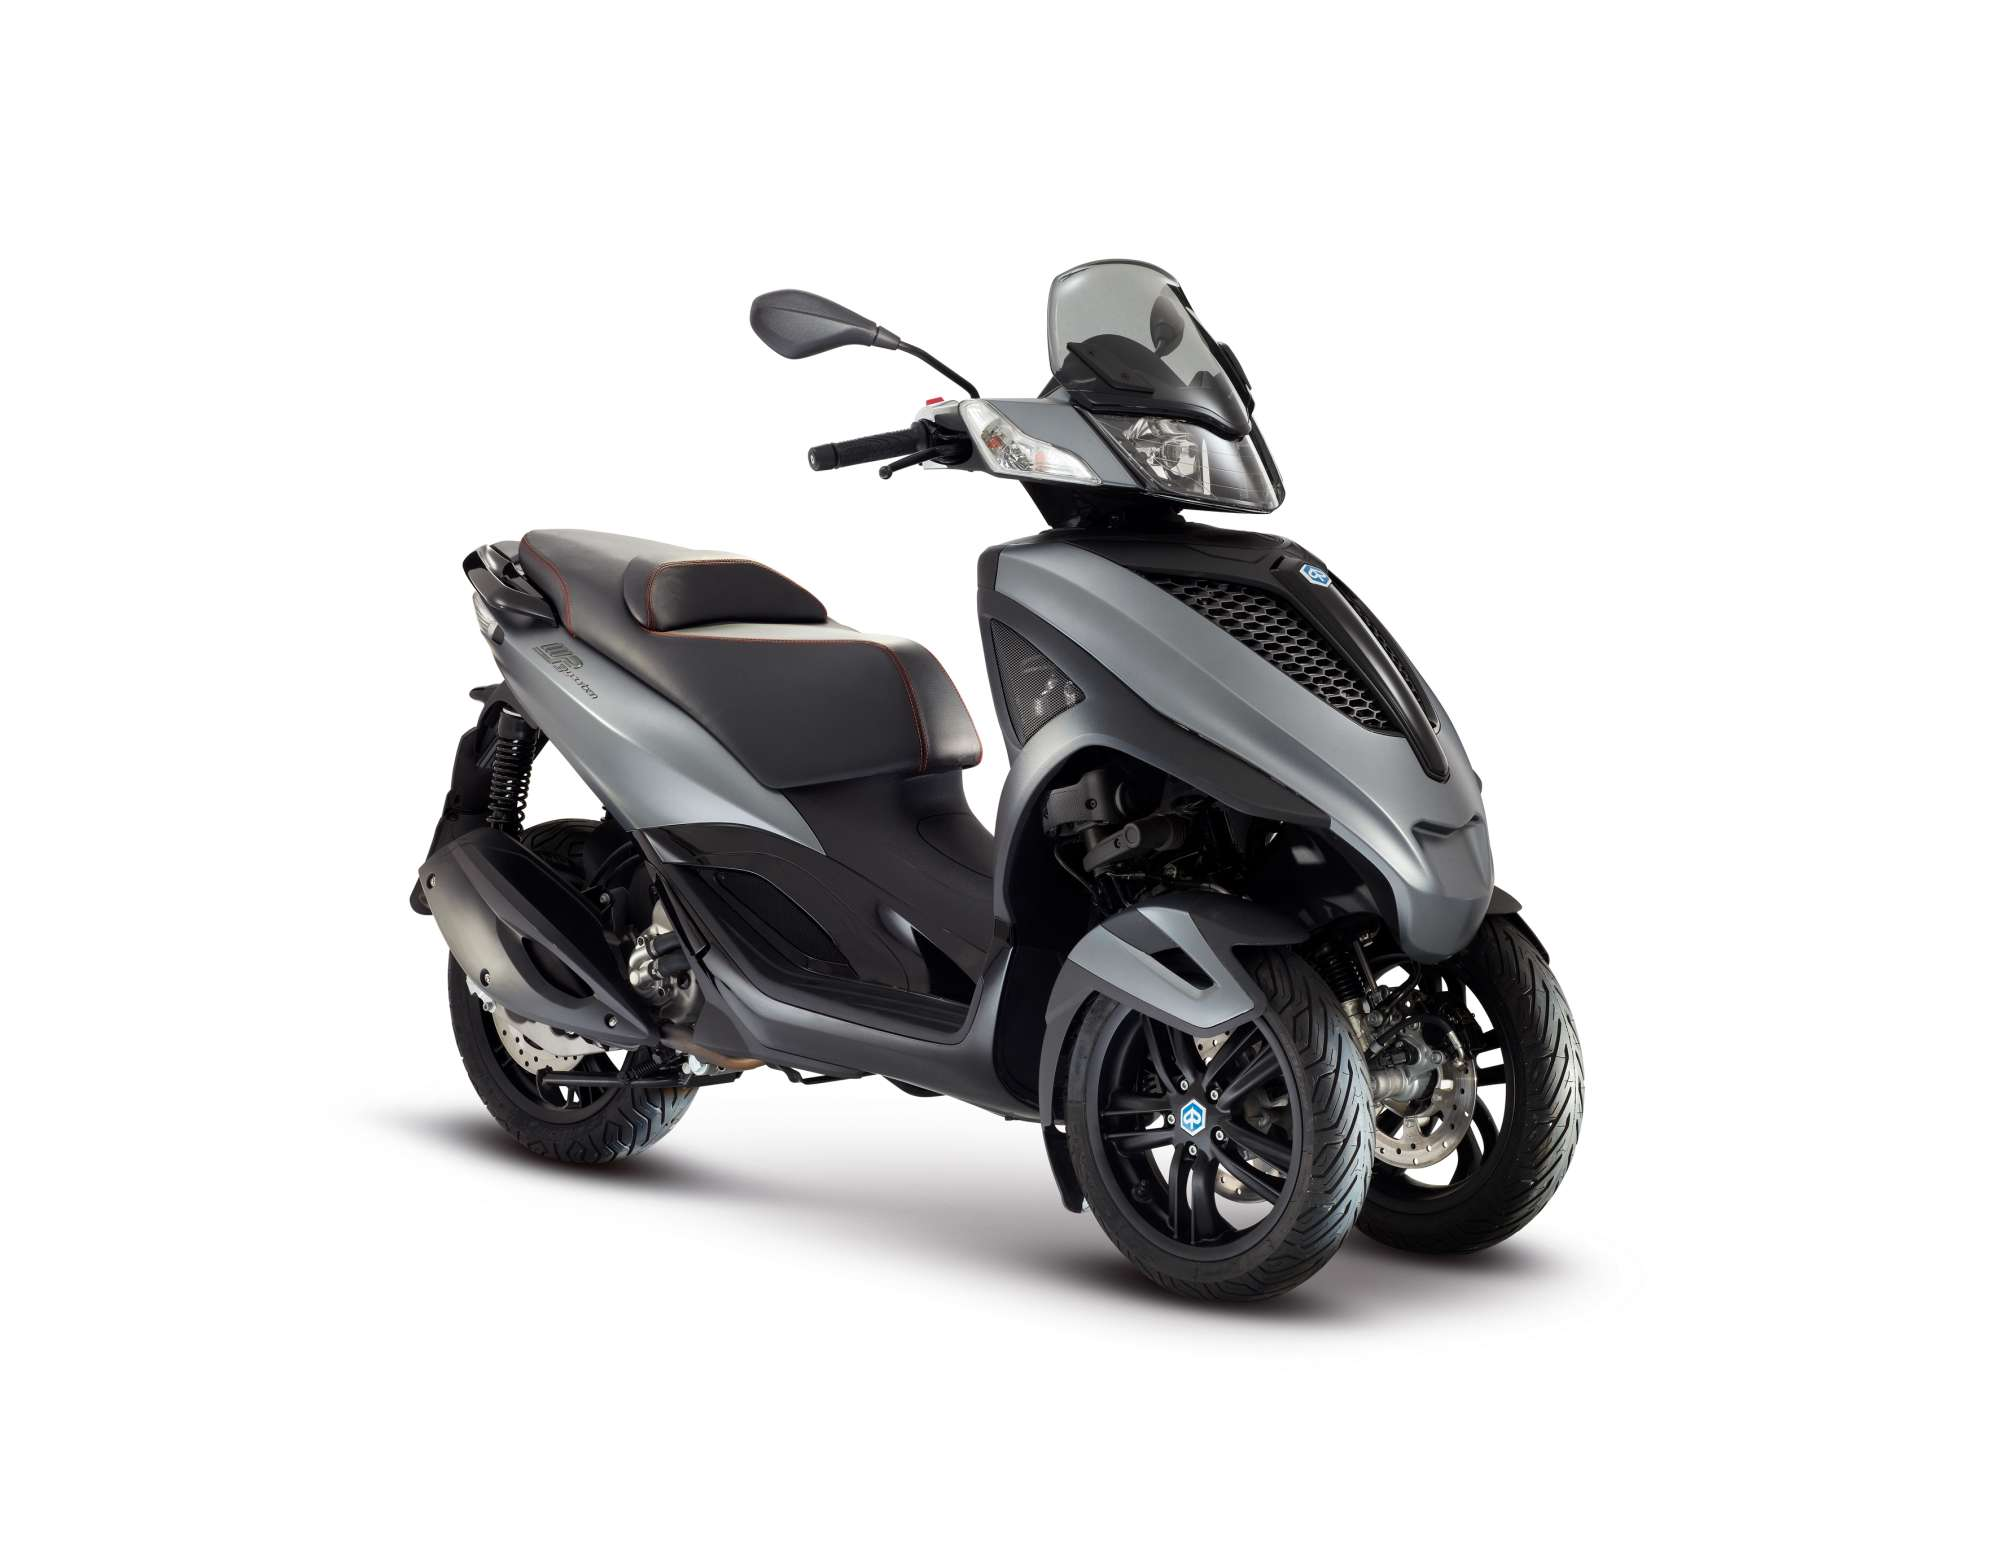 piaggio mp3 300 i e yourban lt all technical data of the model mp3 300 i e yourban lt from piaggio. Black Bedroom Furniture Sets. Home Design Ideas